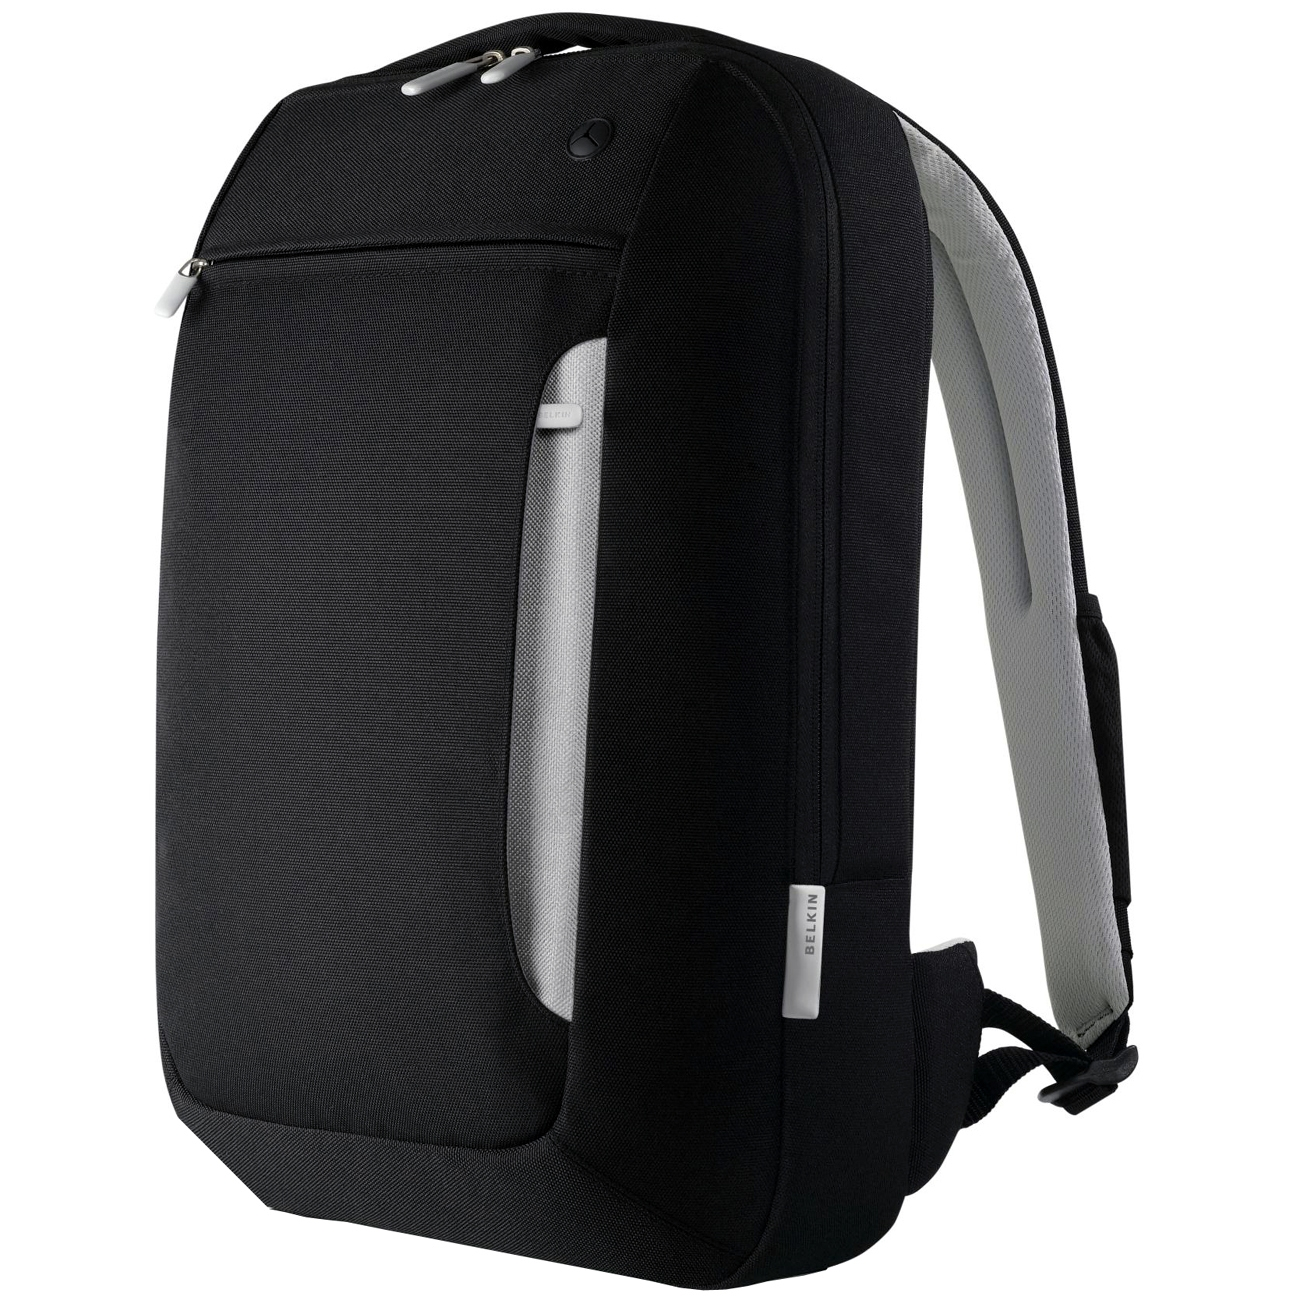 Belkin Slim Notebook Backpack - Backpack - Polyester - Black, Light Gray